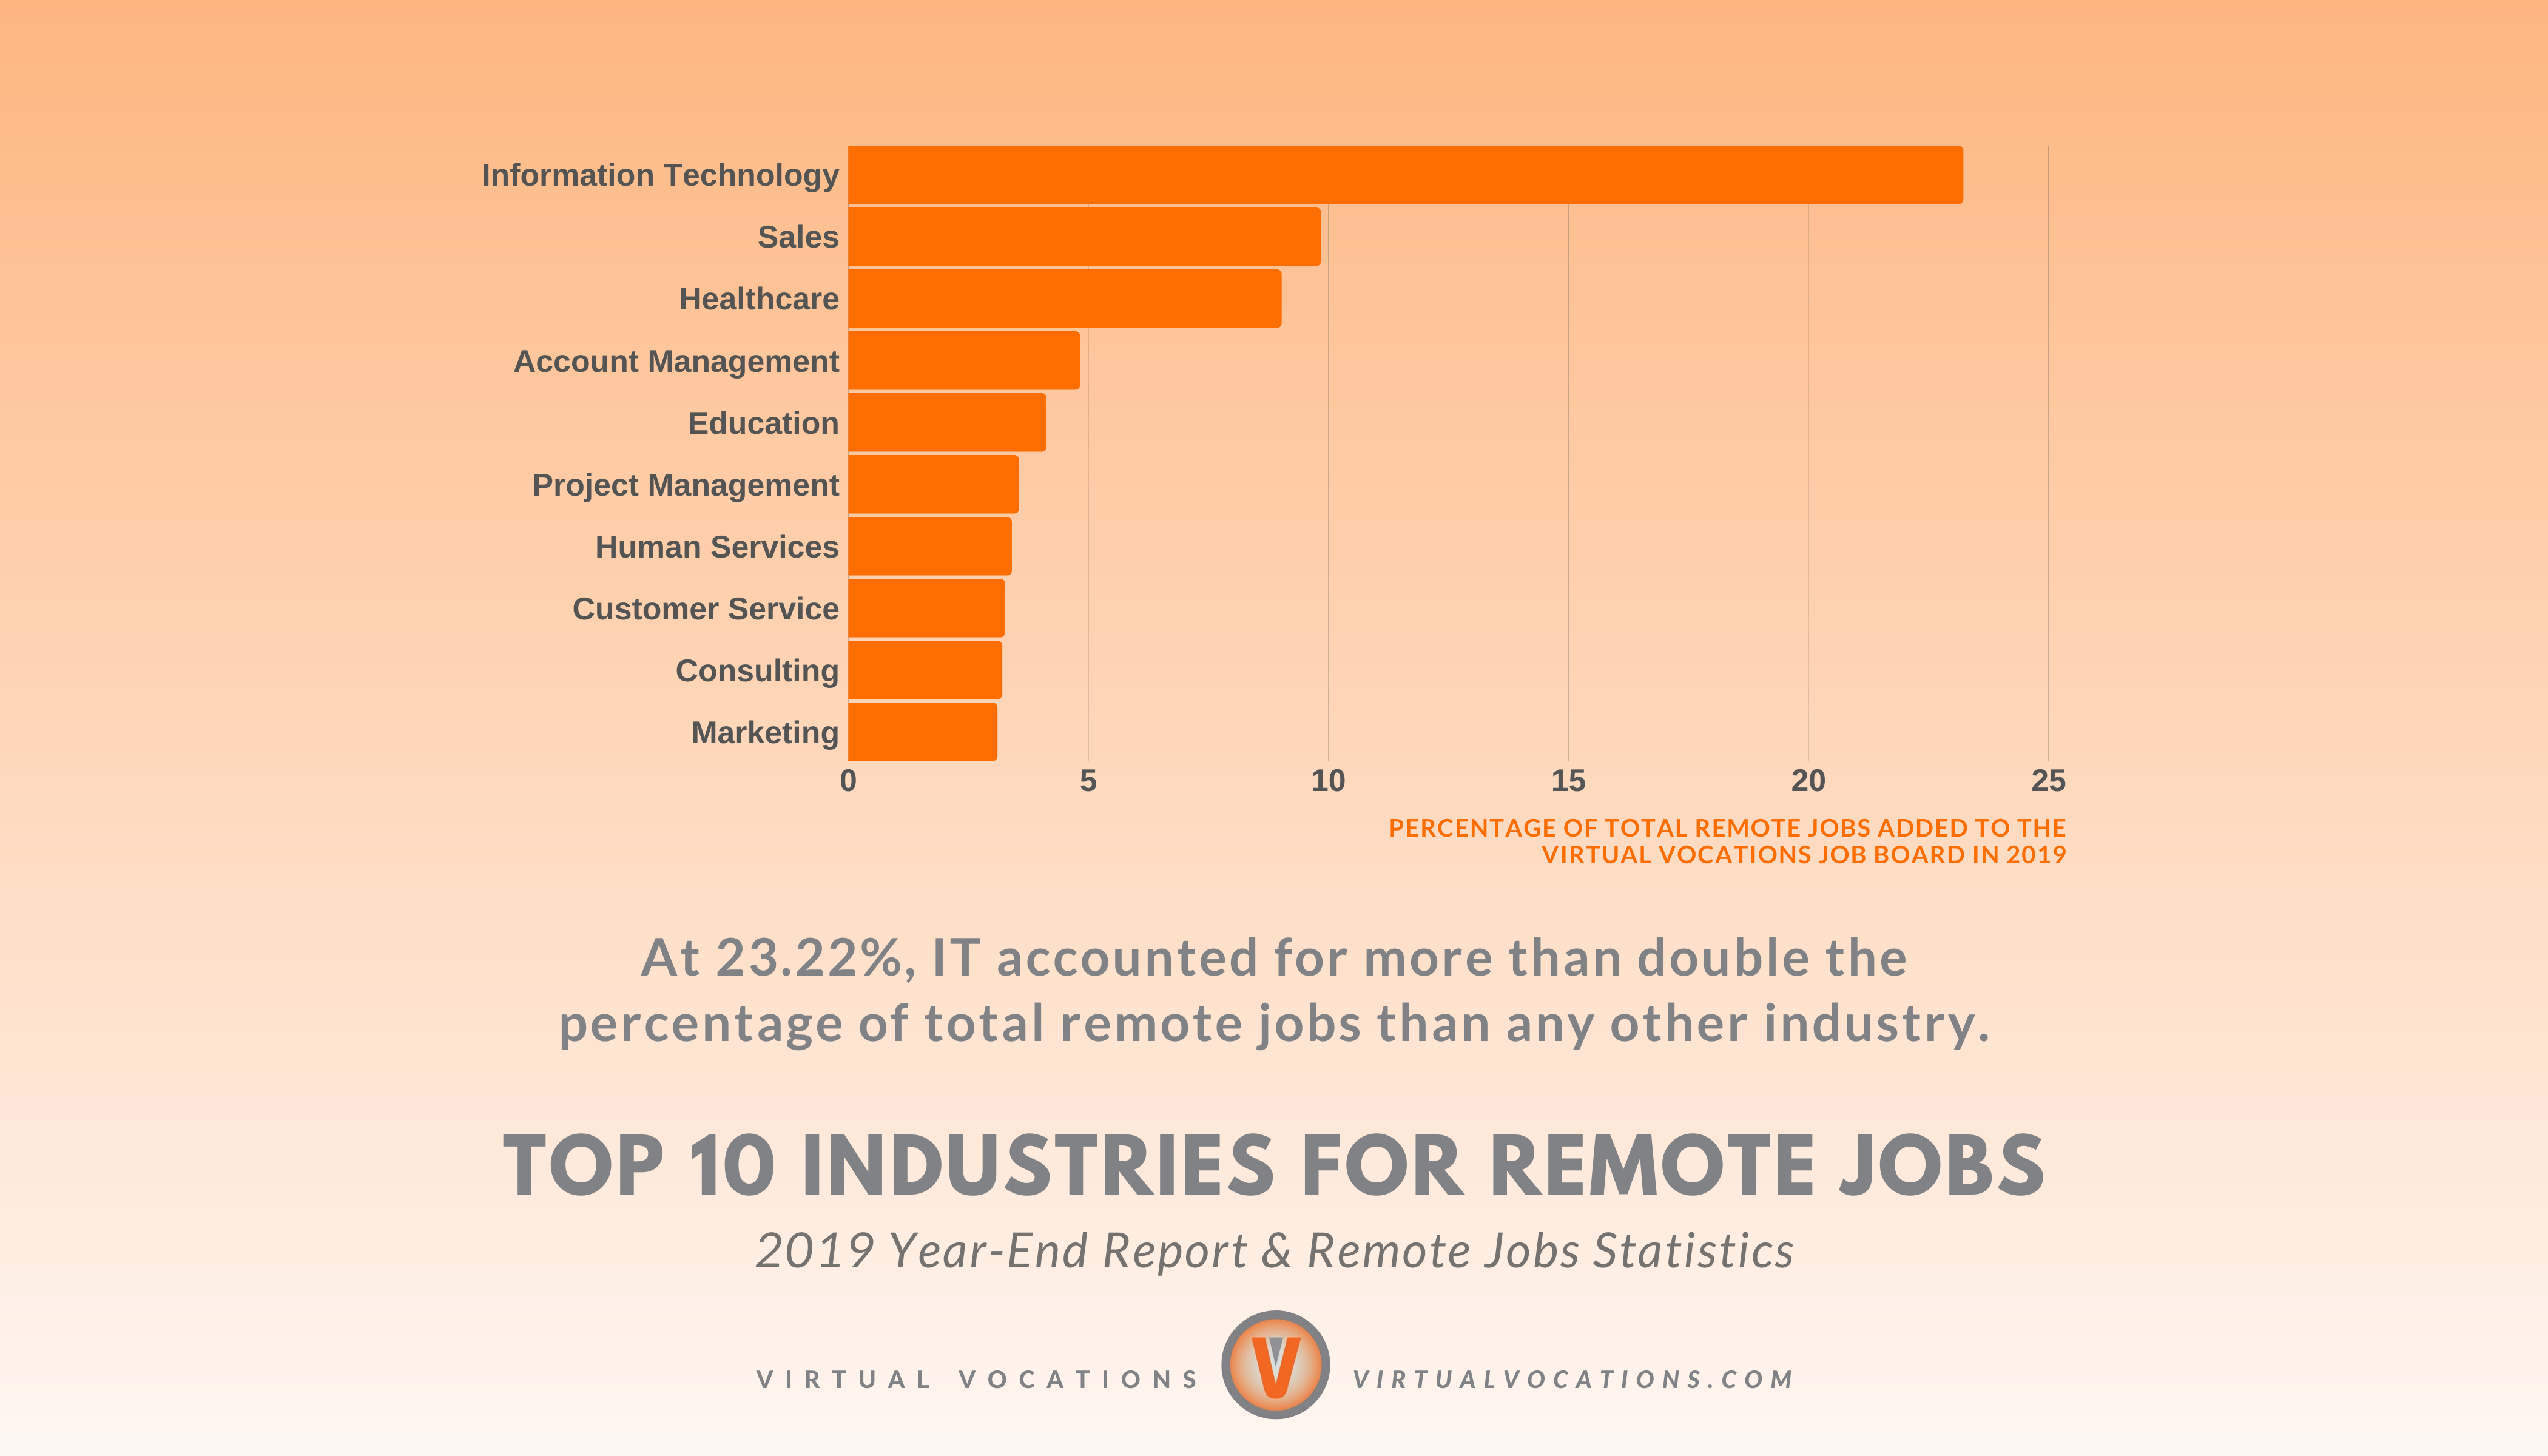 Top 10 Industries for Remote Jobs - Virtual Vocations 2019 Year-End Report and Remote Jobs Statistics